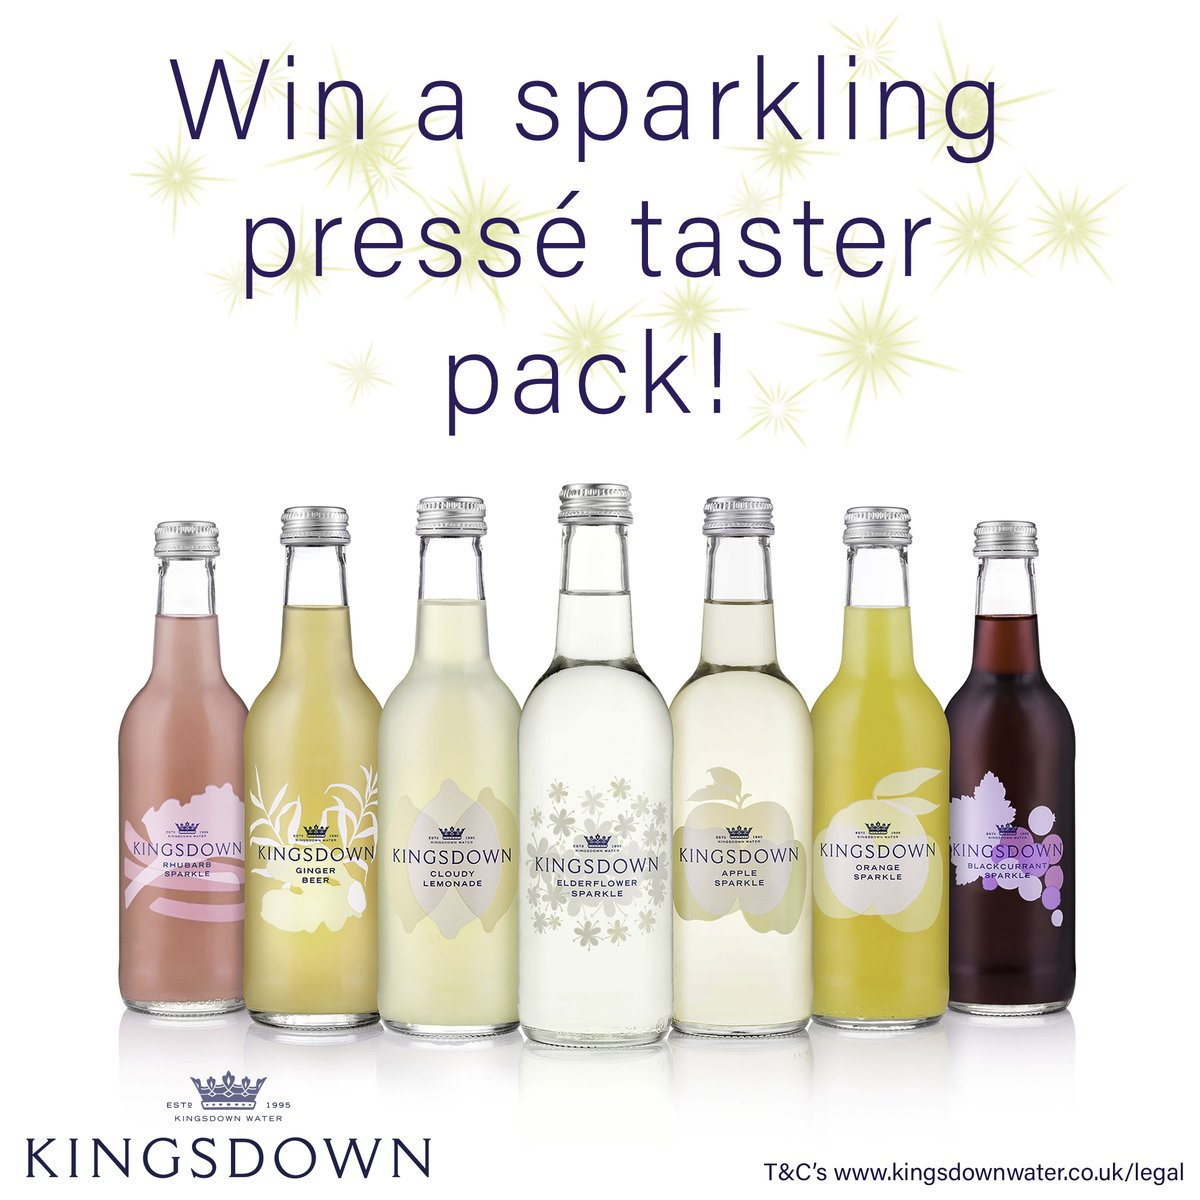 Week 3  Everyone could do with some extra sparkle right now, so #Follow & #rt @kingsdownwater for your chance to #win a Sparkling Pressé taster pack! #Giveaway #prizes #FridayFeeling #FridayMotivation   #Competition ends 6pm 10/04/2020 - Good luck <br>http://pic.twitter.com/9dP1iKL29O